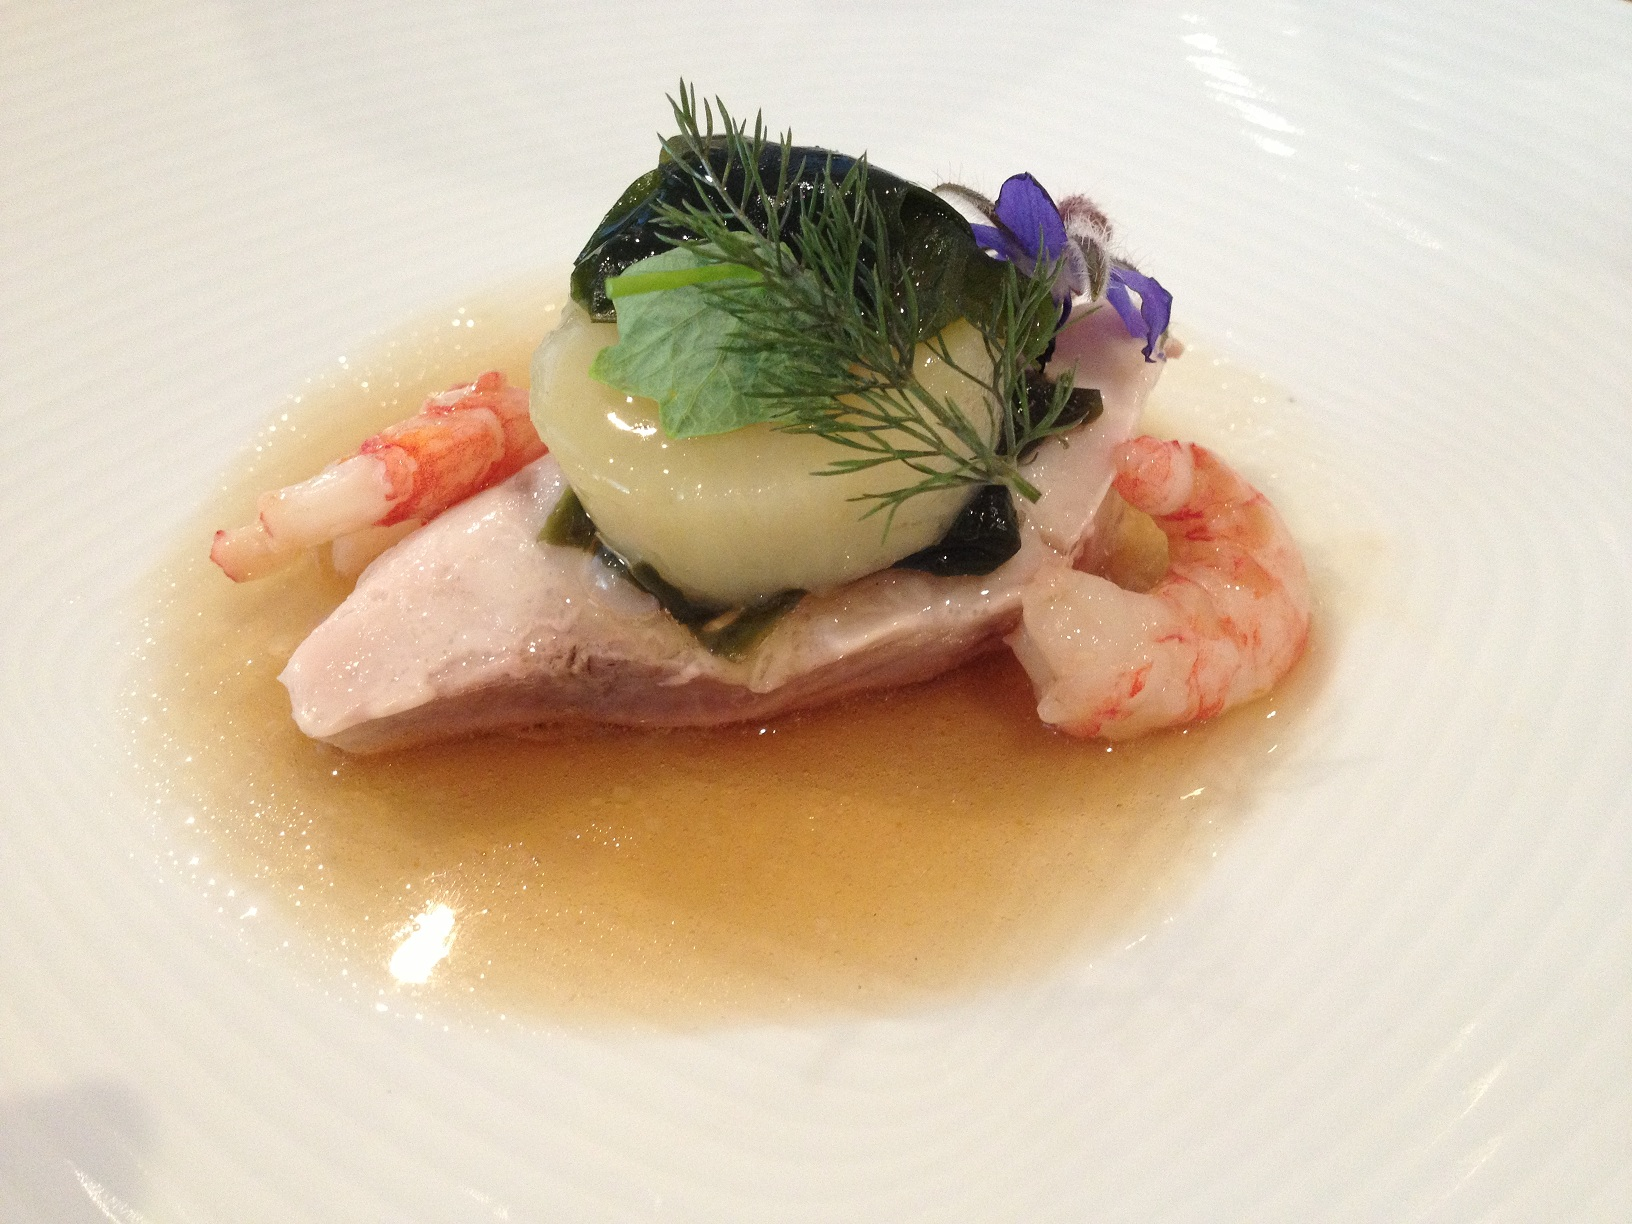 mulloway, potato, sea lettuce broth, carried shrimp resized